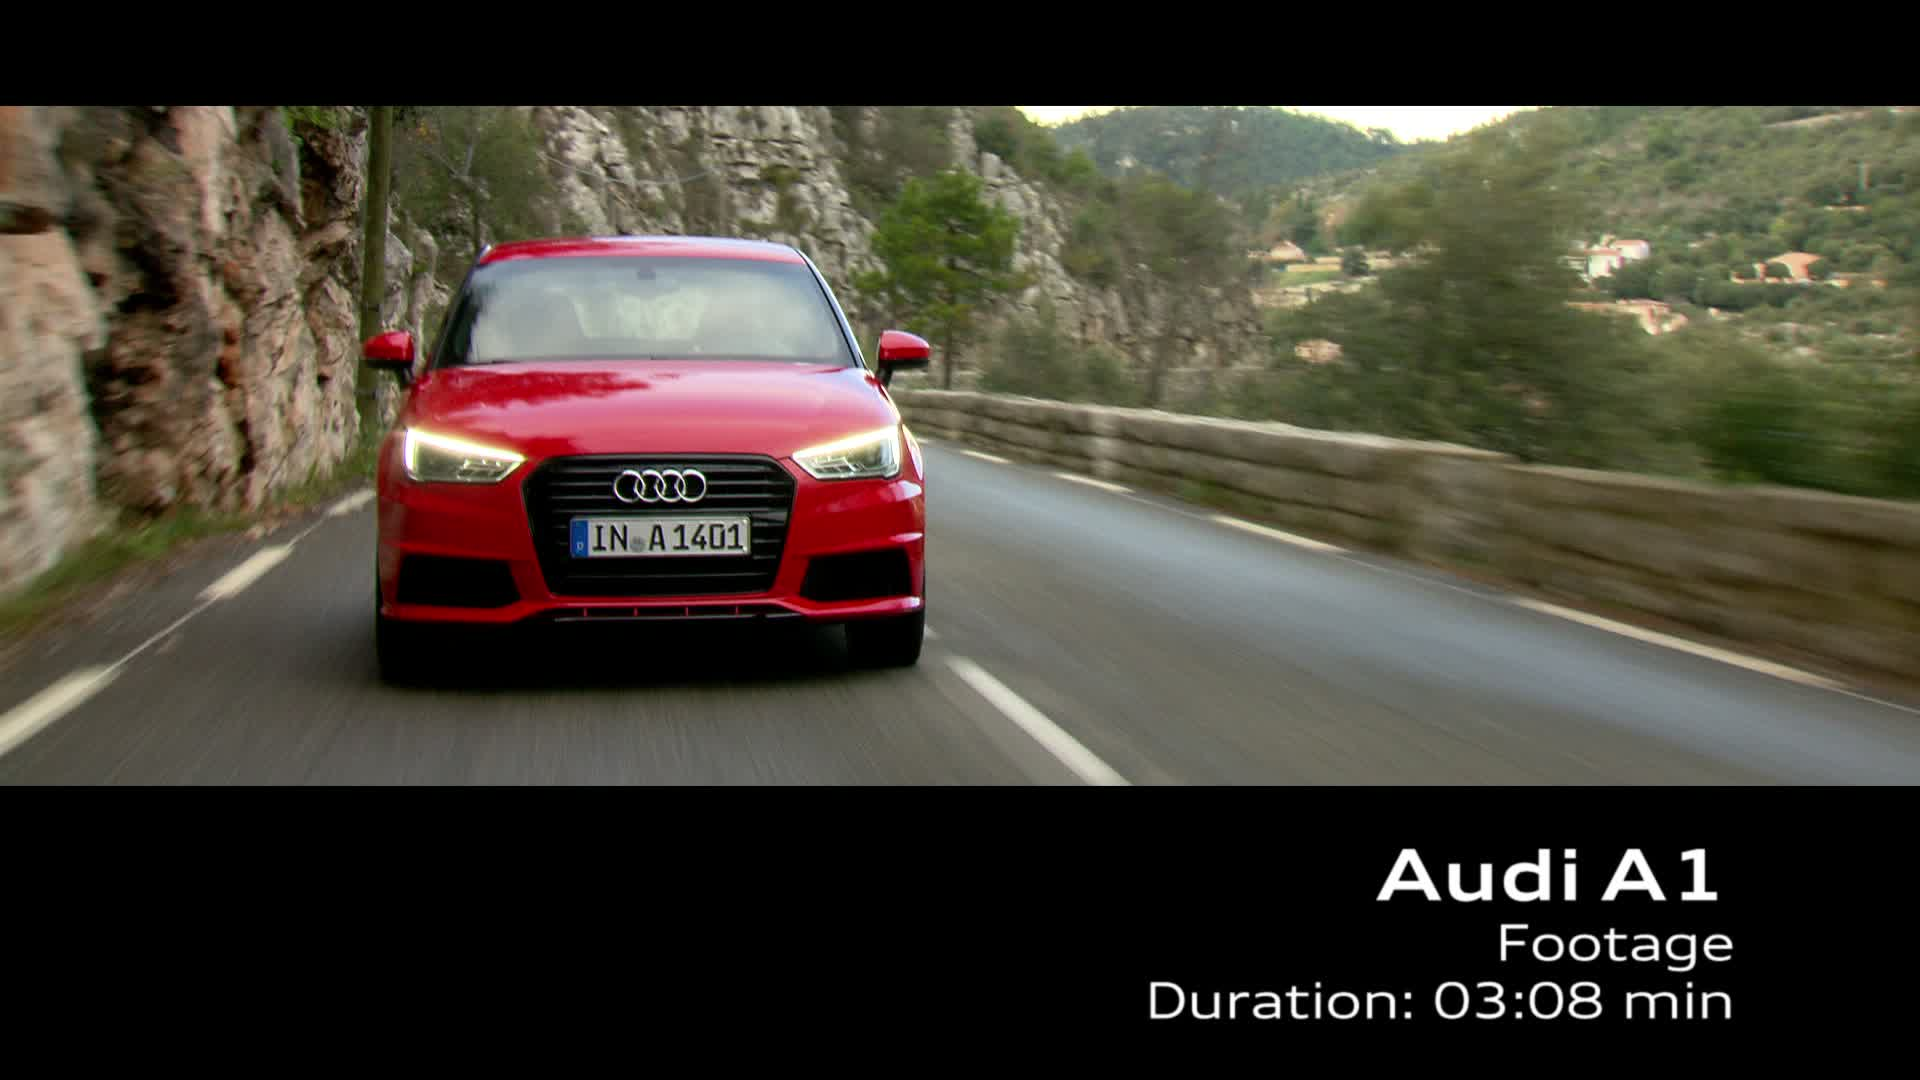 The new Audi A1 - Footage